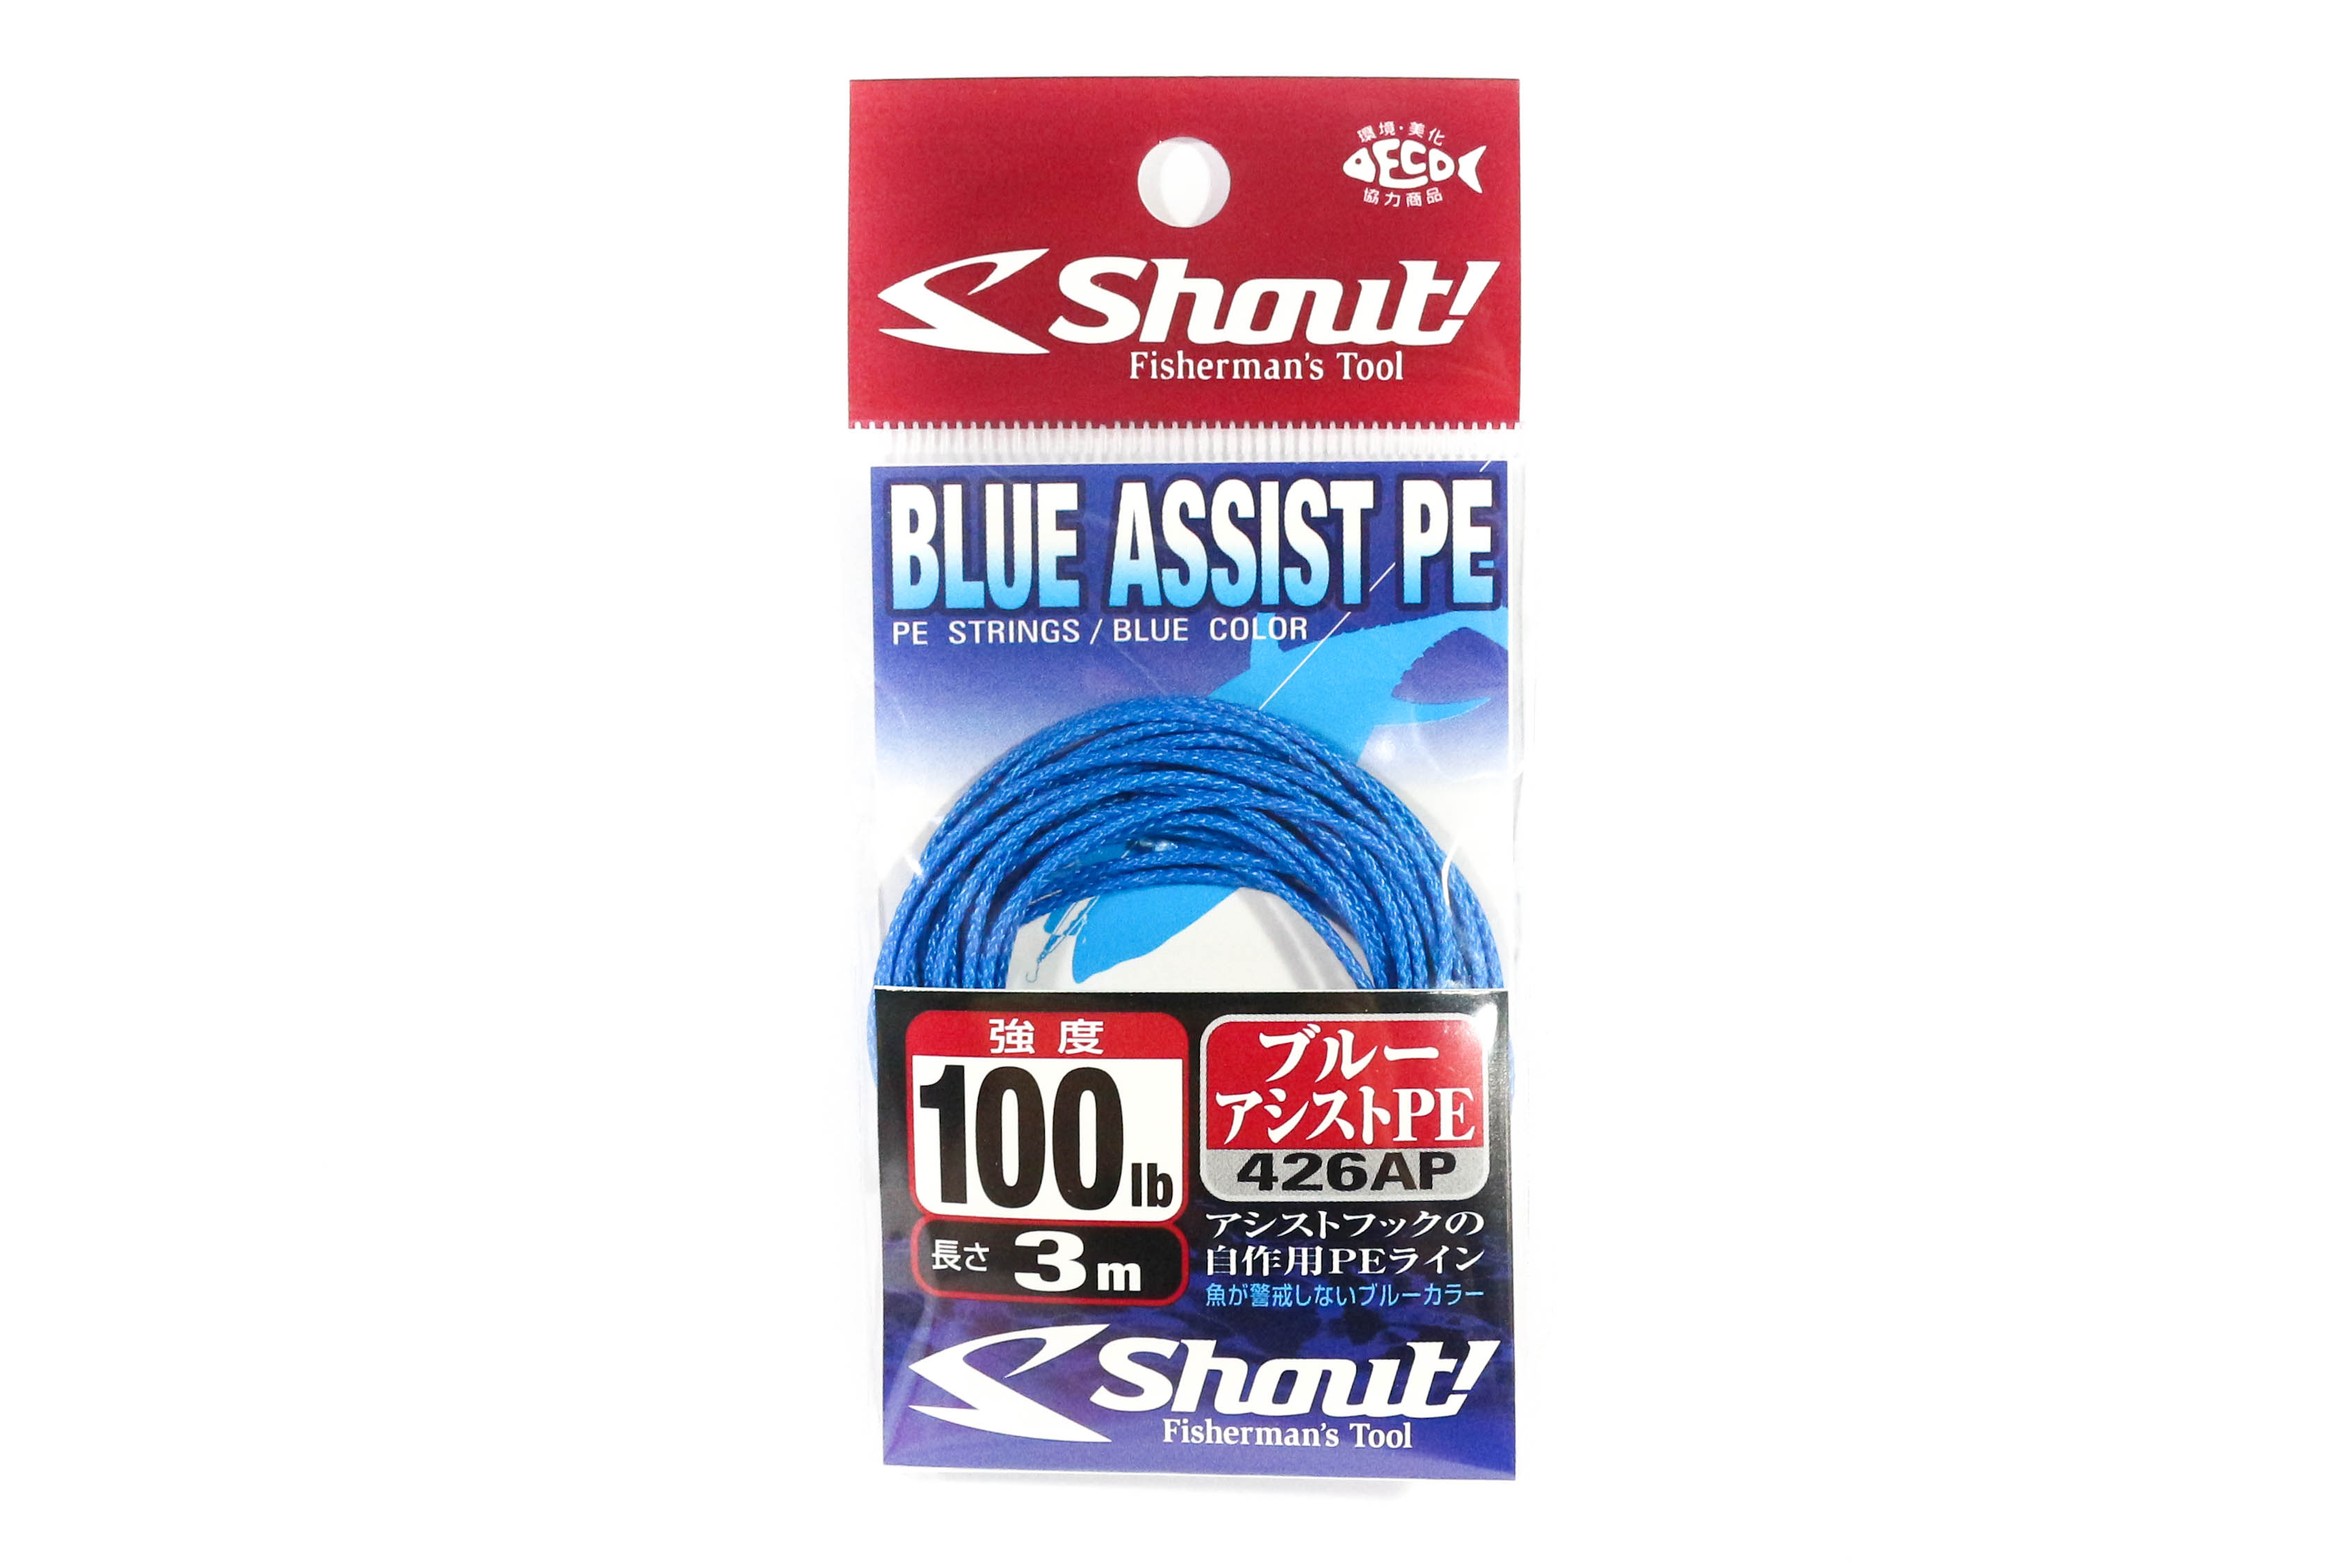 Shout 426-AP Blue Assist P.E Line Assist Rope Inner Core 3 meters 100LB (4657)